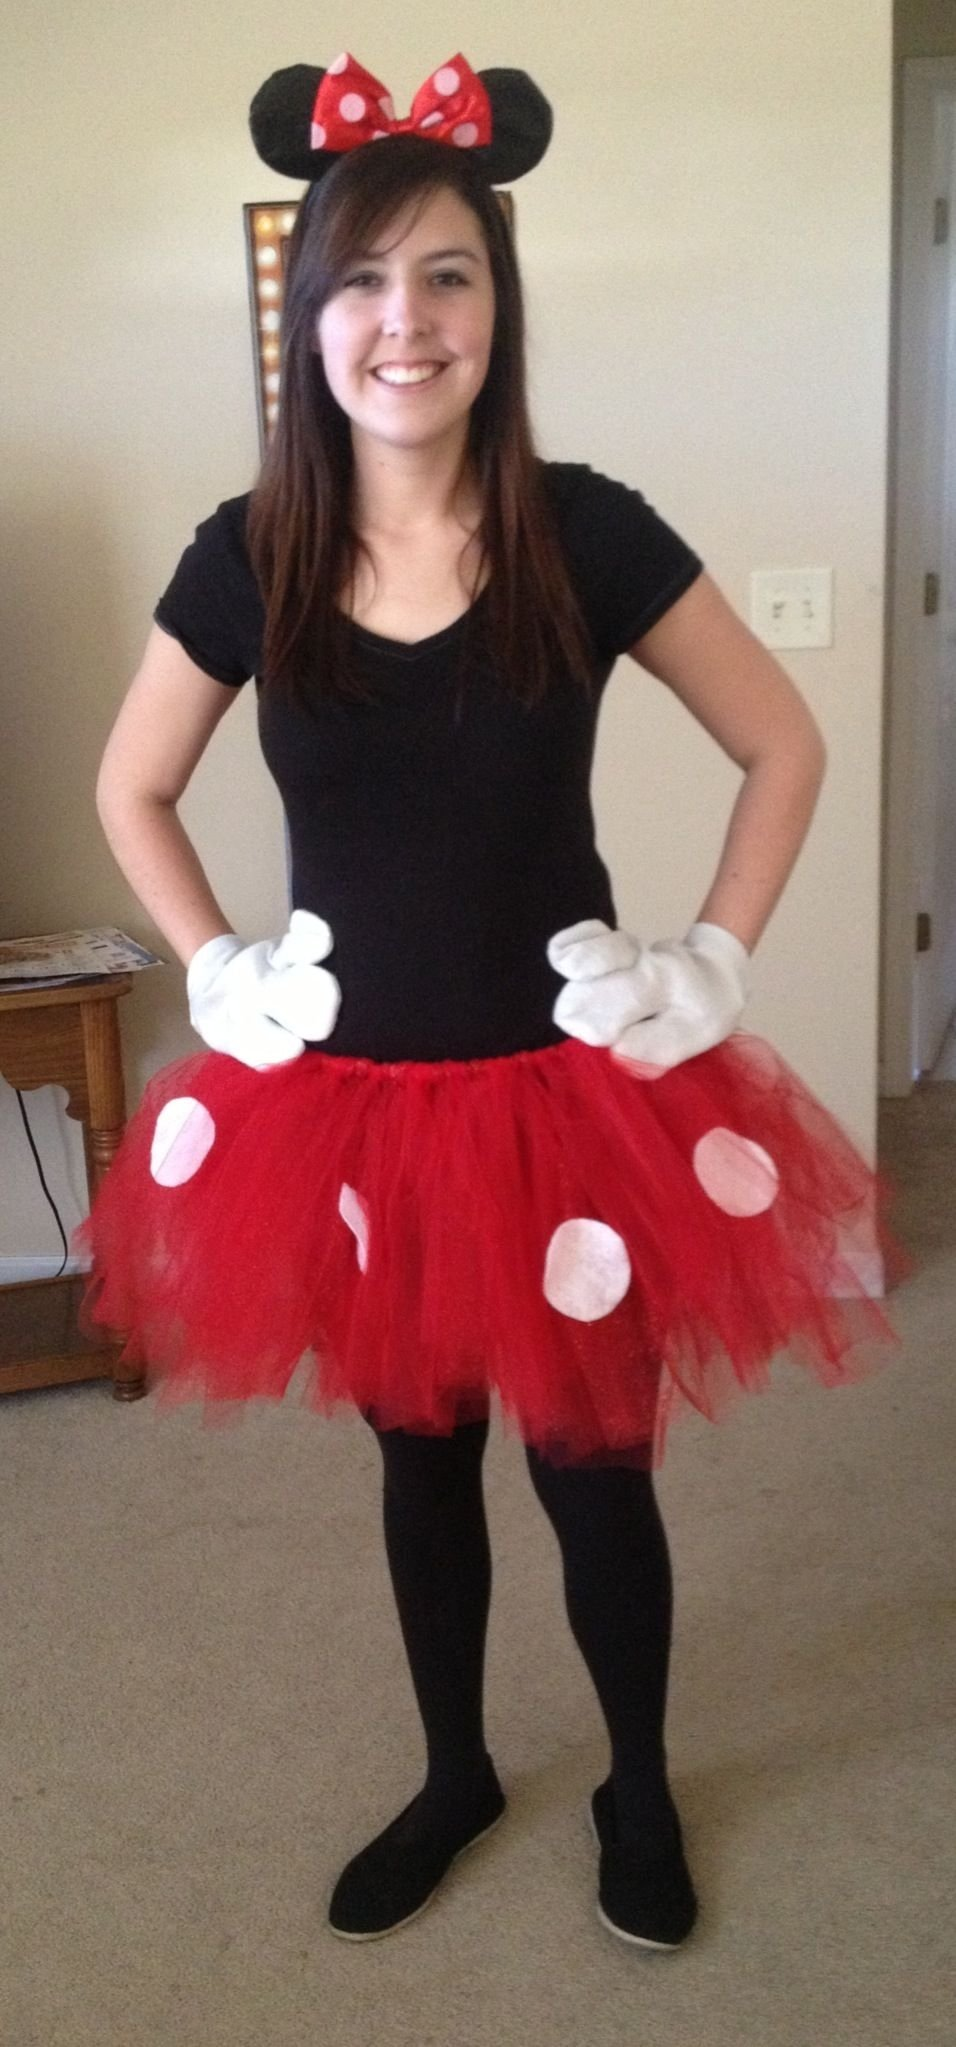 10 Great Minnie Mouse Costume Ideas For Women http www tipsforplanningaparty halloweencostumepartyideas php 2020